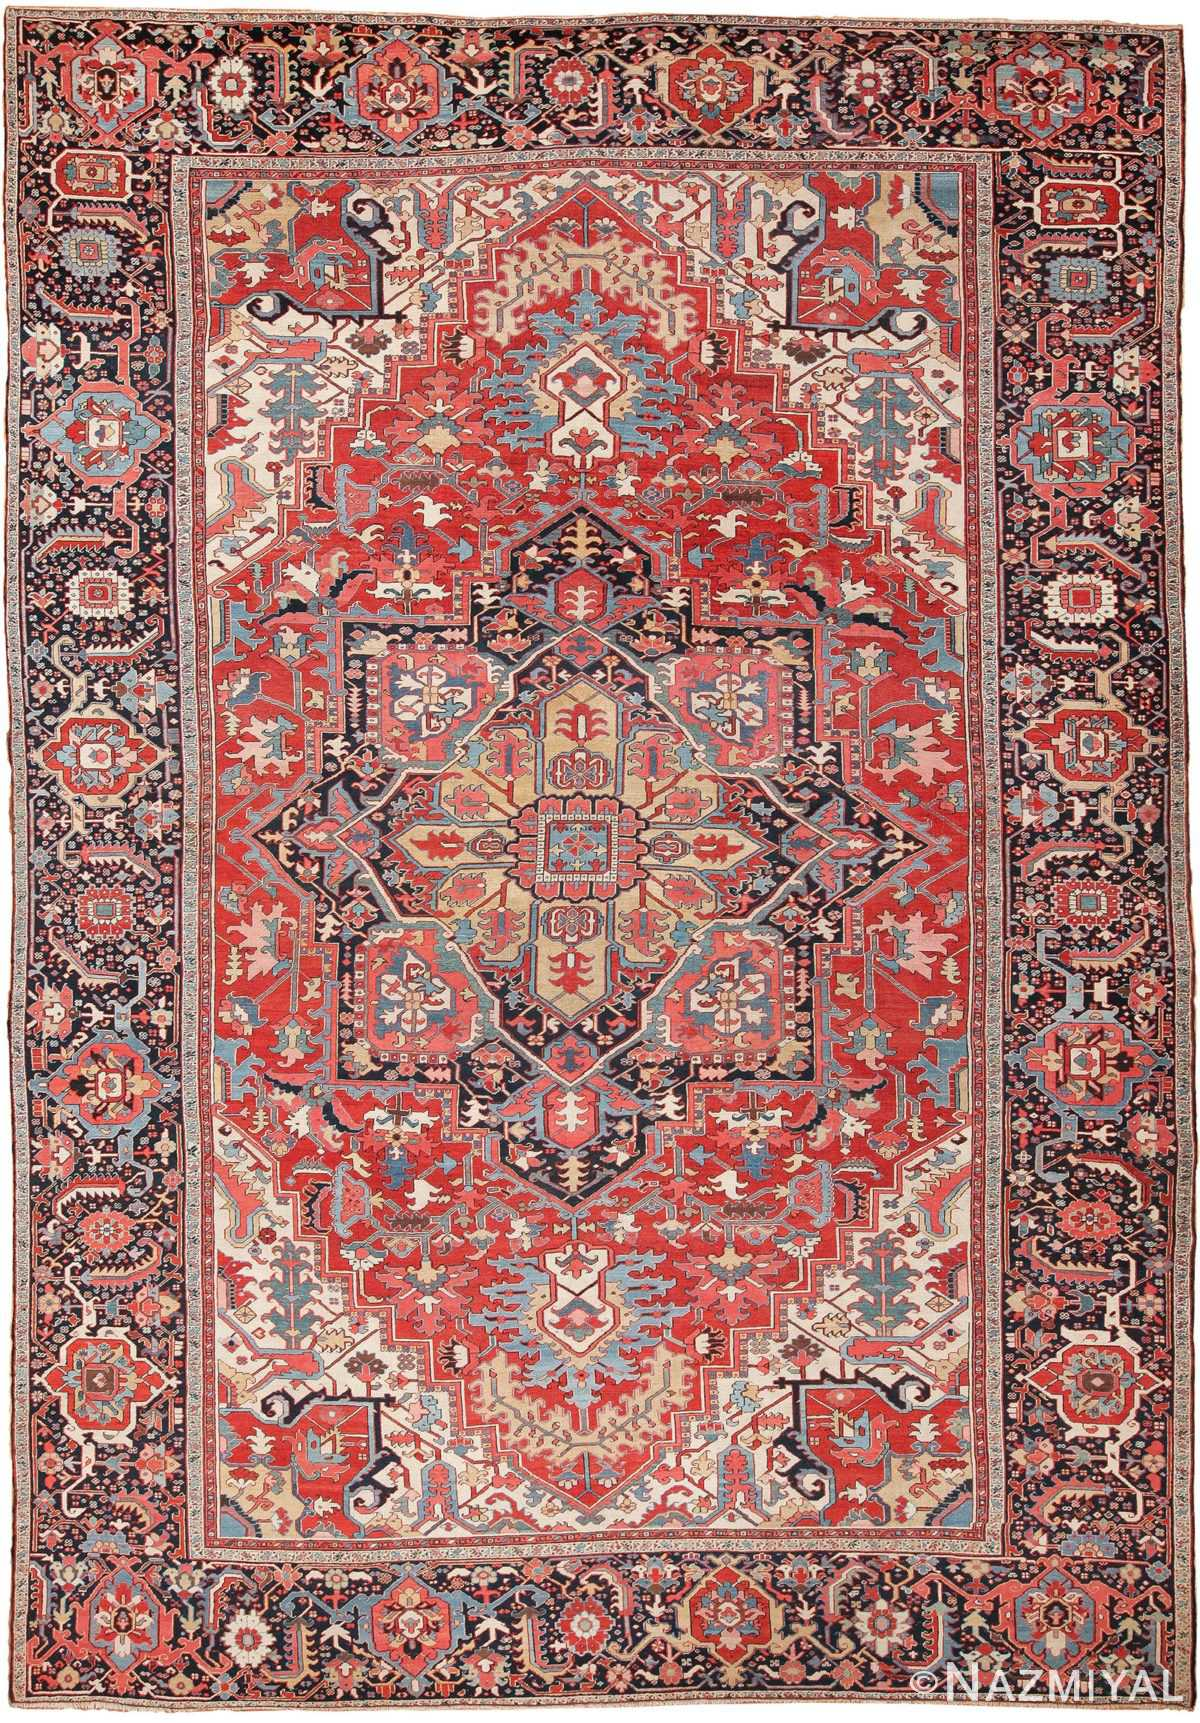 Large Antique Jewel Tone Color Persian Serapi Rug 49705 - Nazmiyal